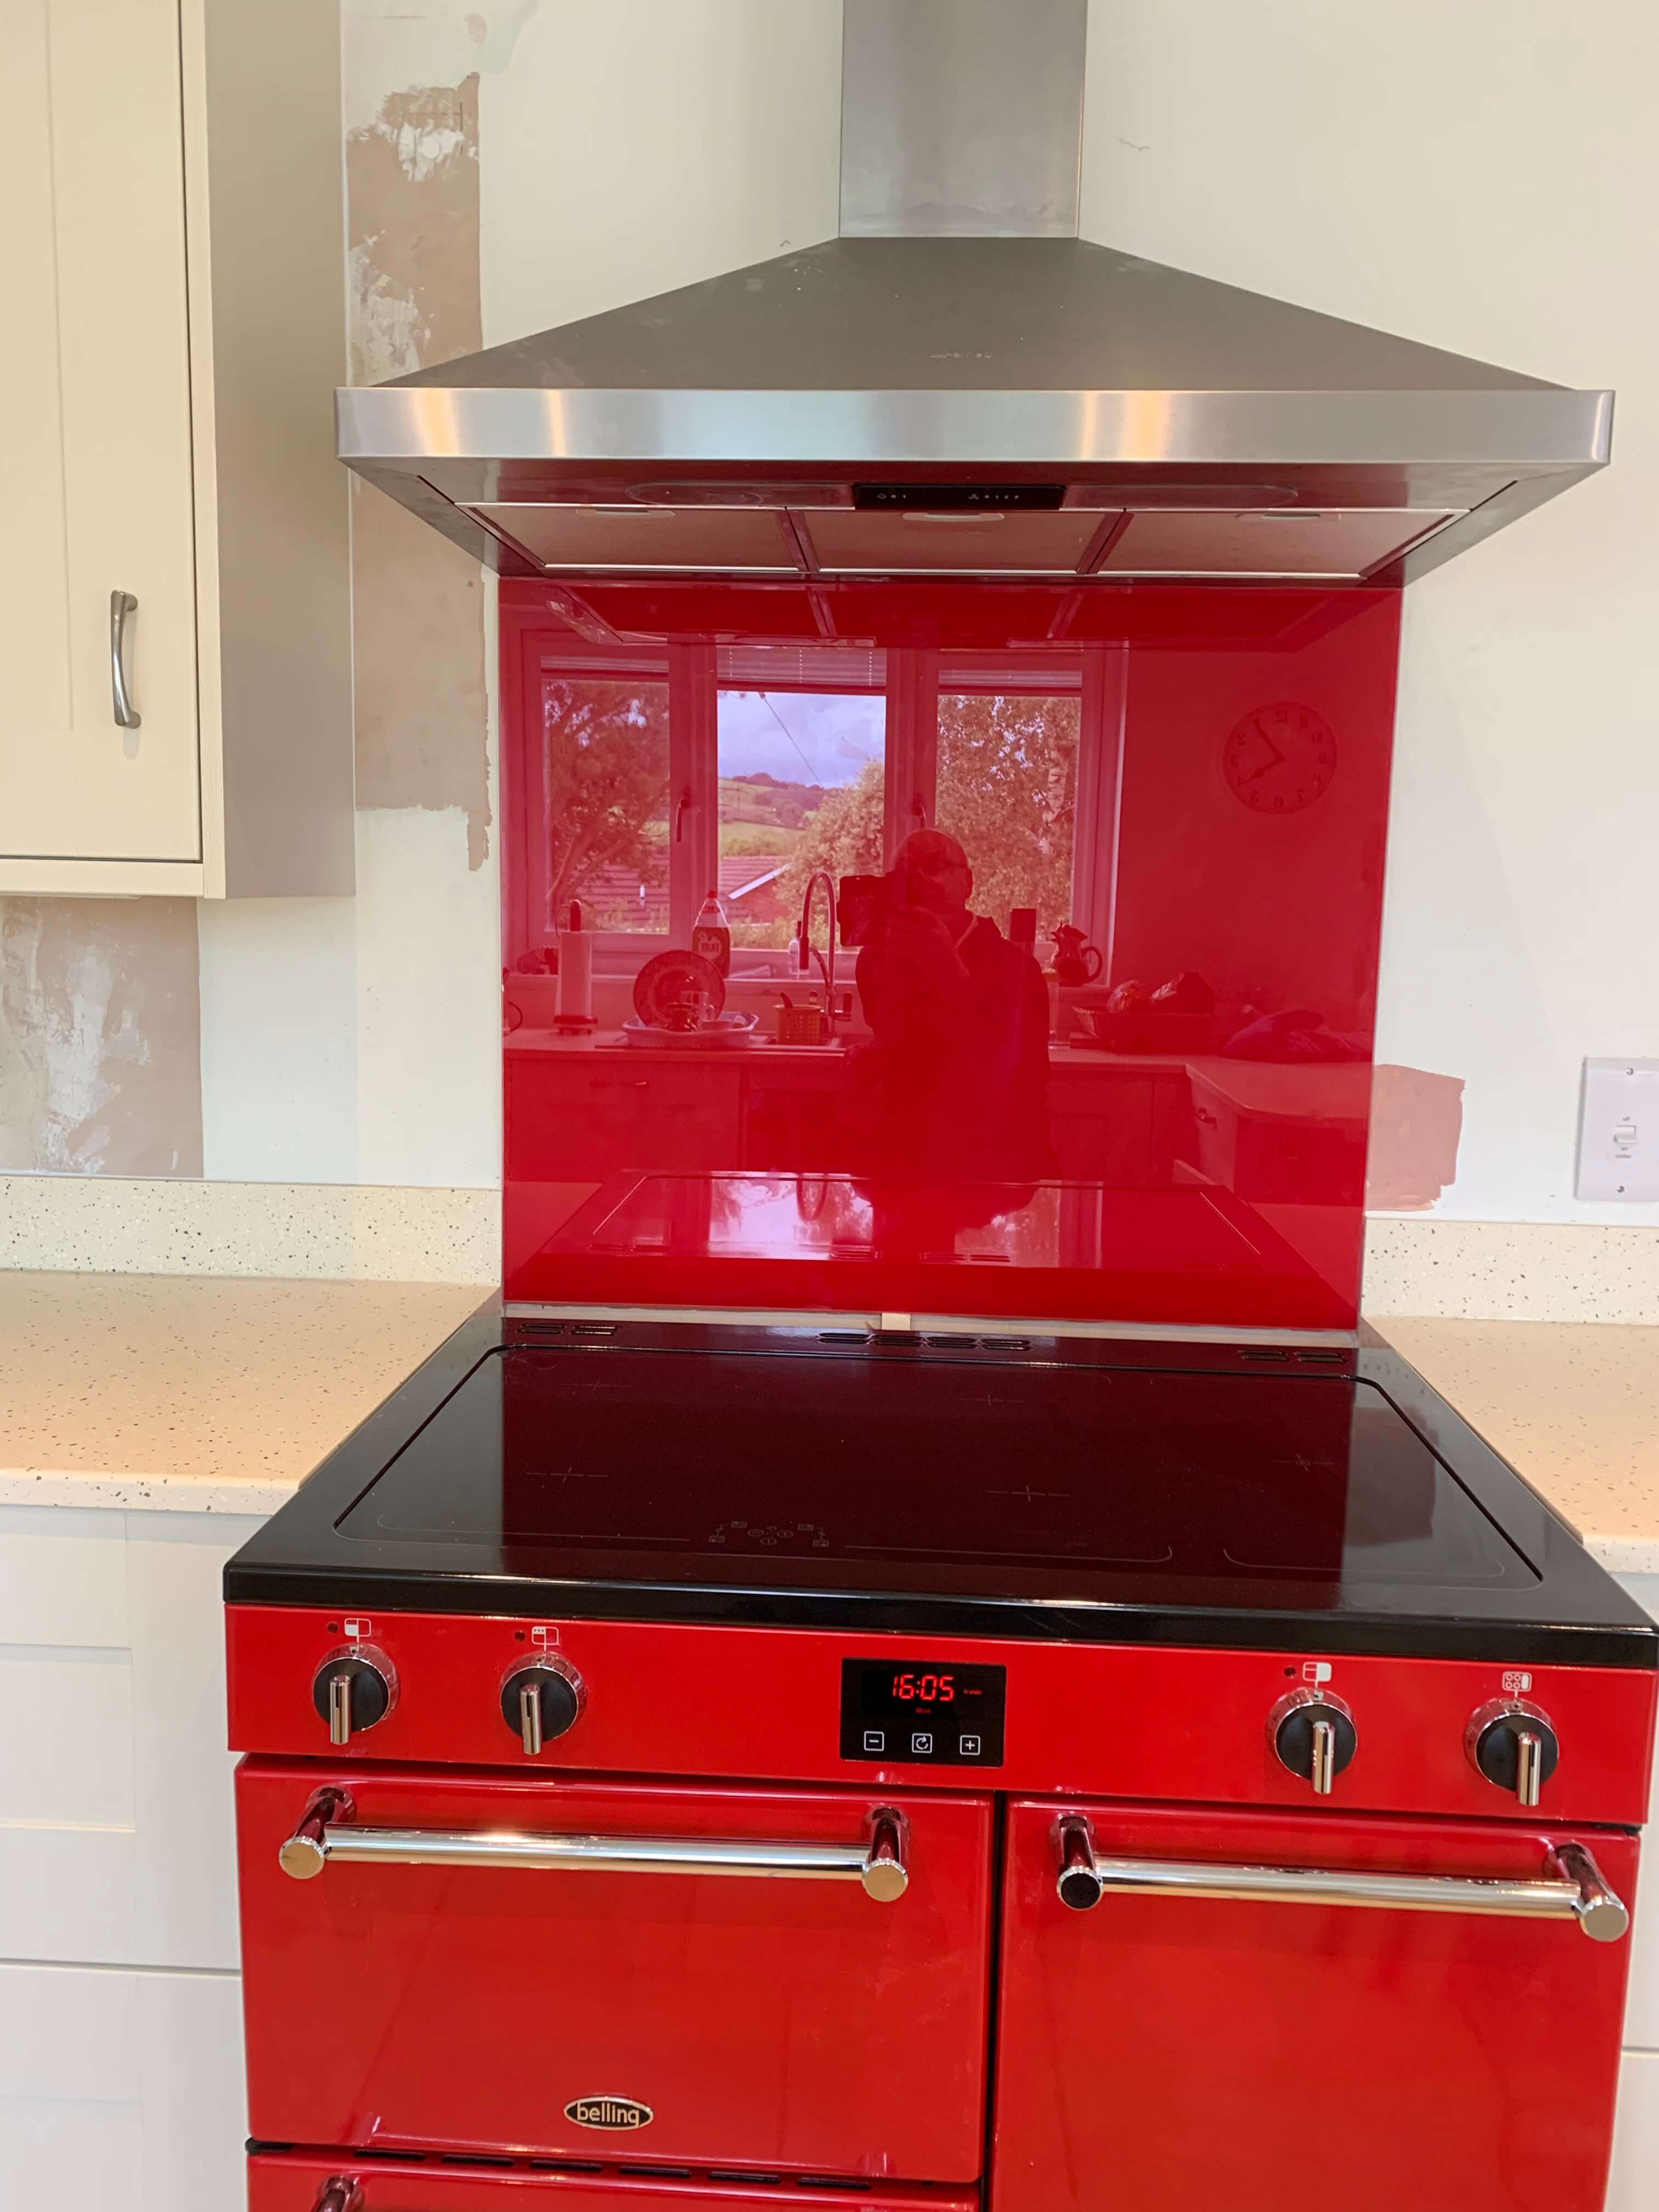 Mr & Mrs A of Swimbridge kitchen Oven Hob and Extractor close up